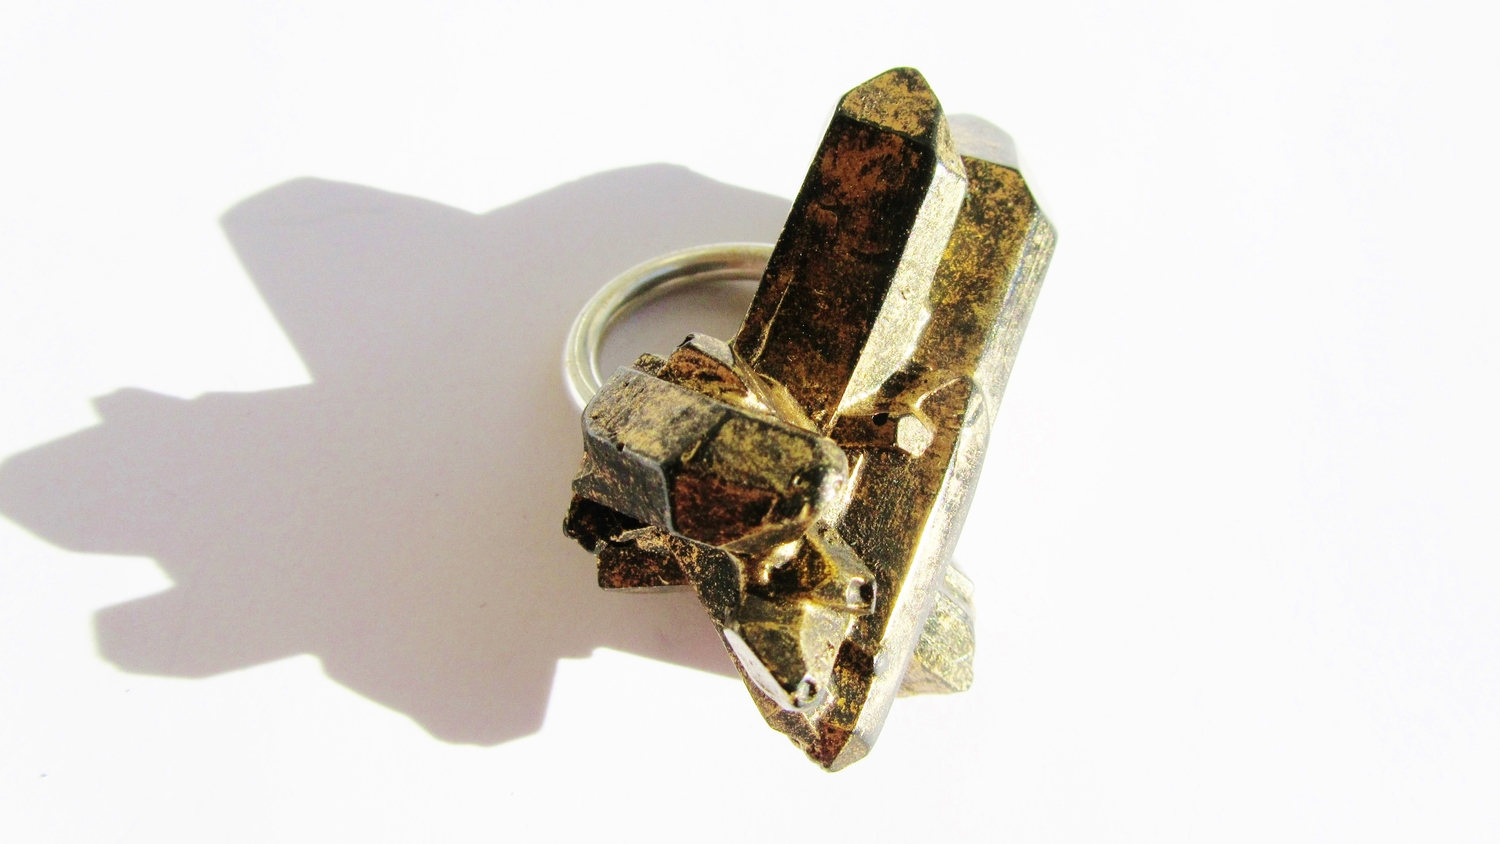 I love working with the real objects, casting and capturing their forms like my  Gold Shard  ring based on the shape of quartz